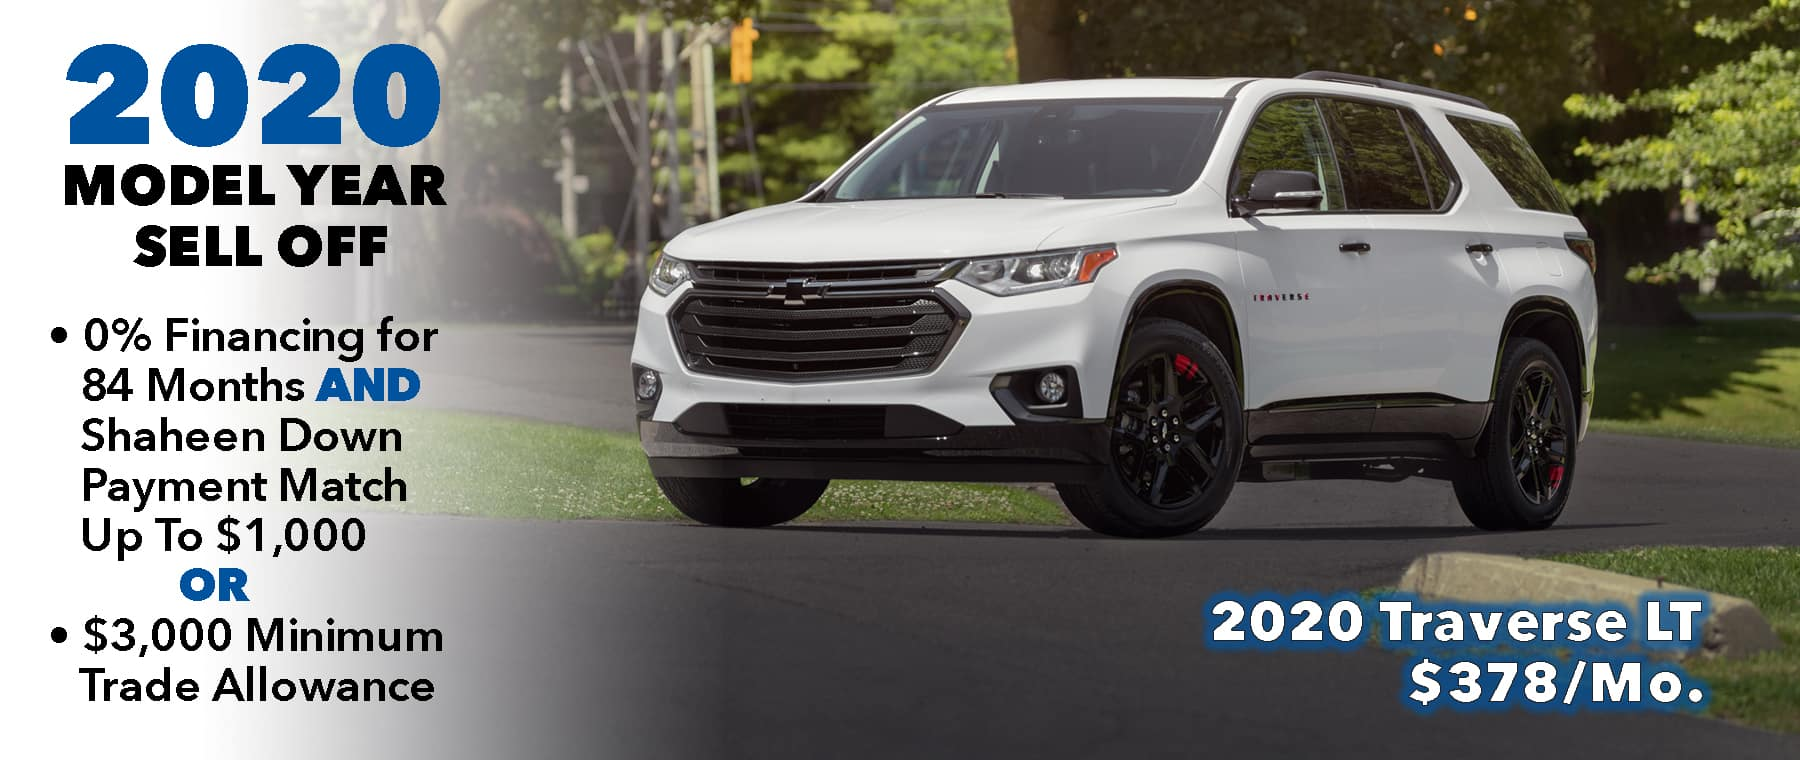 0% @ 84mo. Available On 2020 Models. Buy 2020 Traverse for $378/mo*